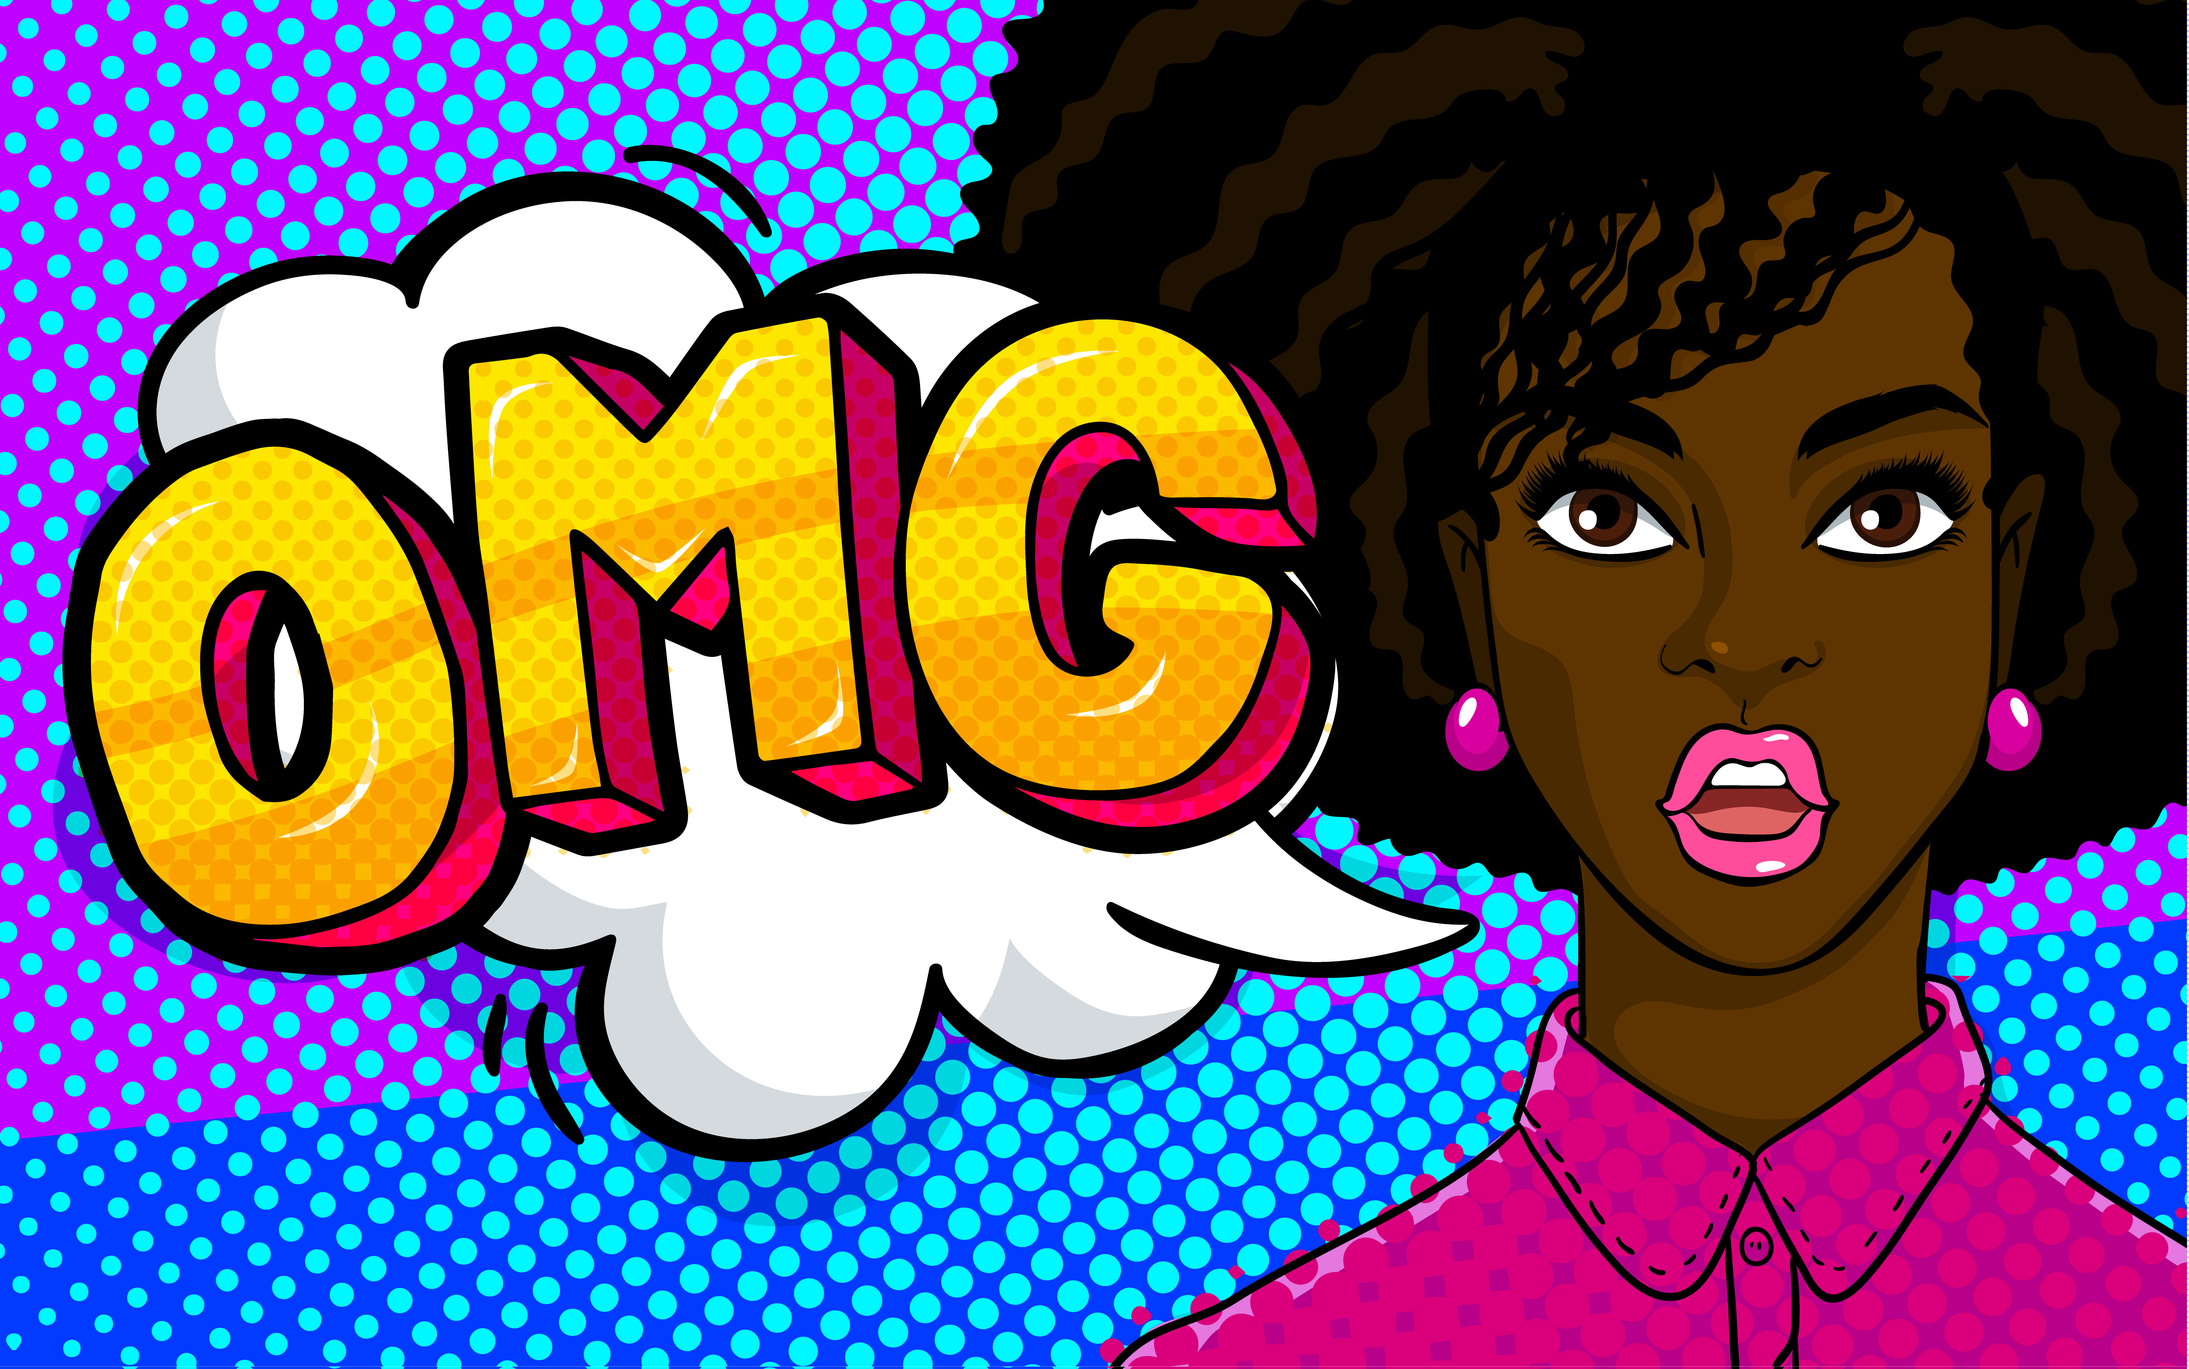 Afro - american woman face in pop art style.